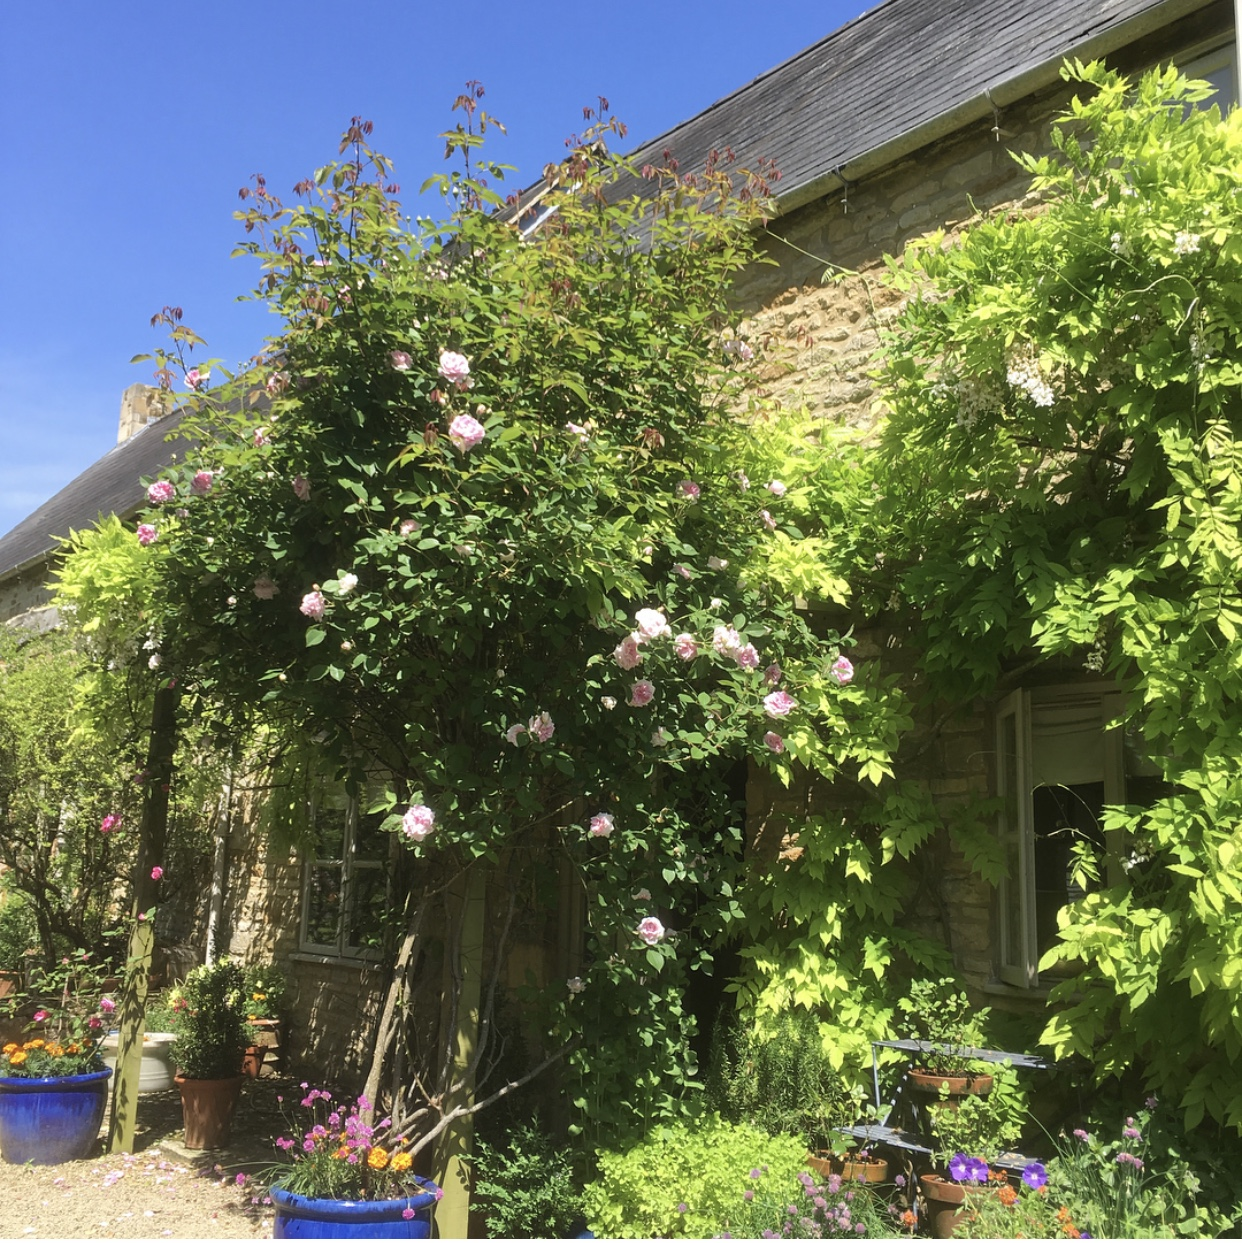 My family home in the Cotswolds. These roses smell incredible!